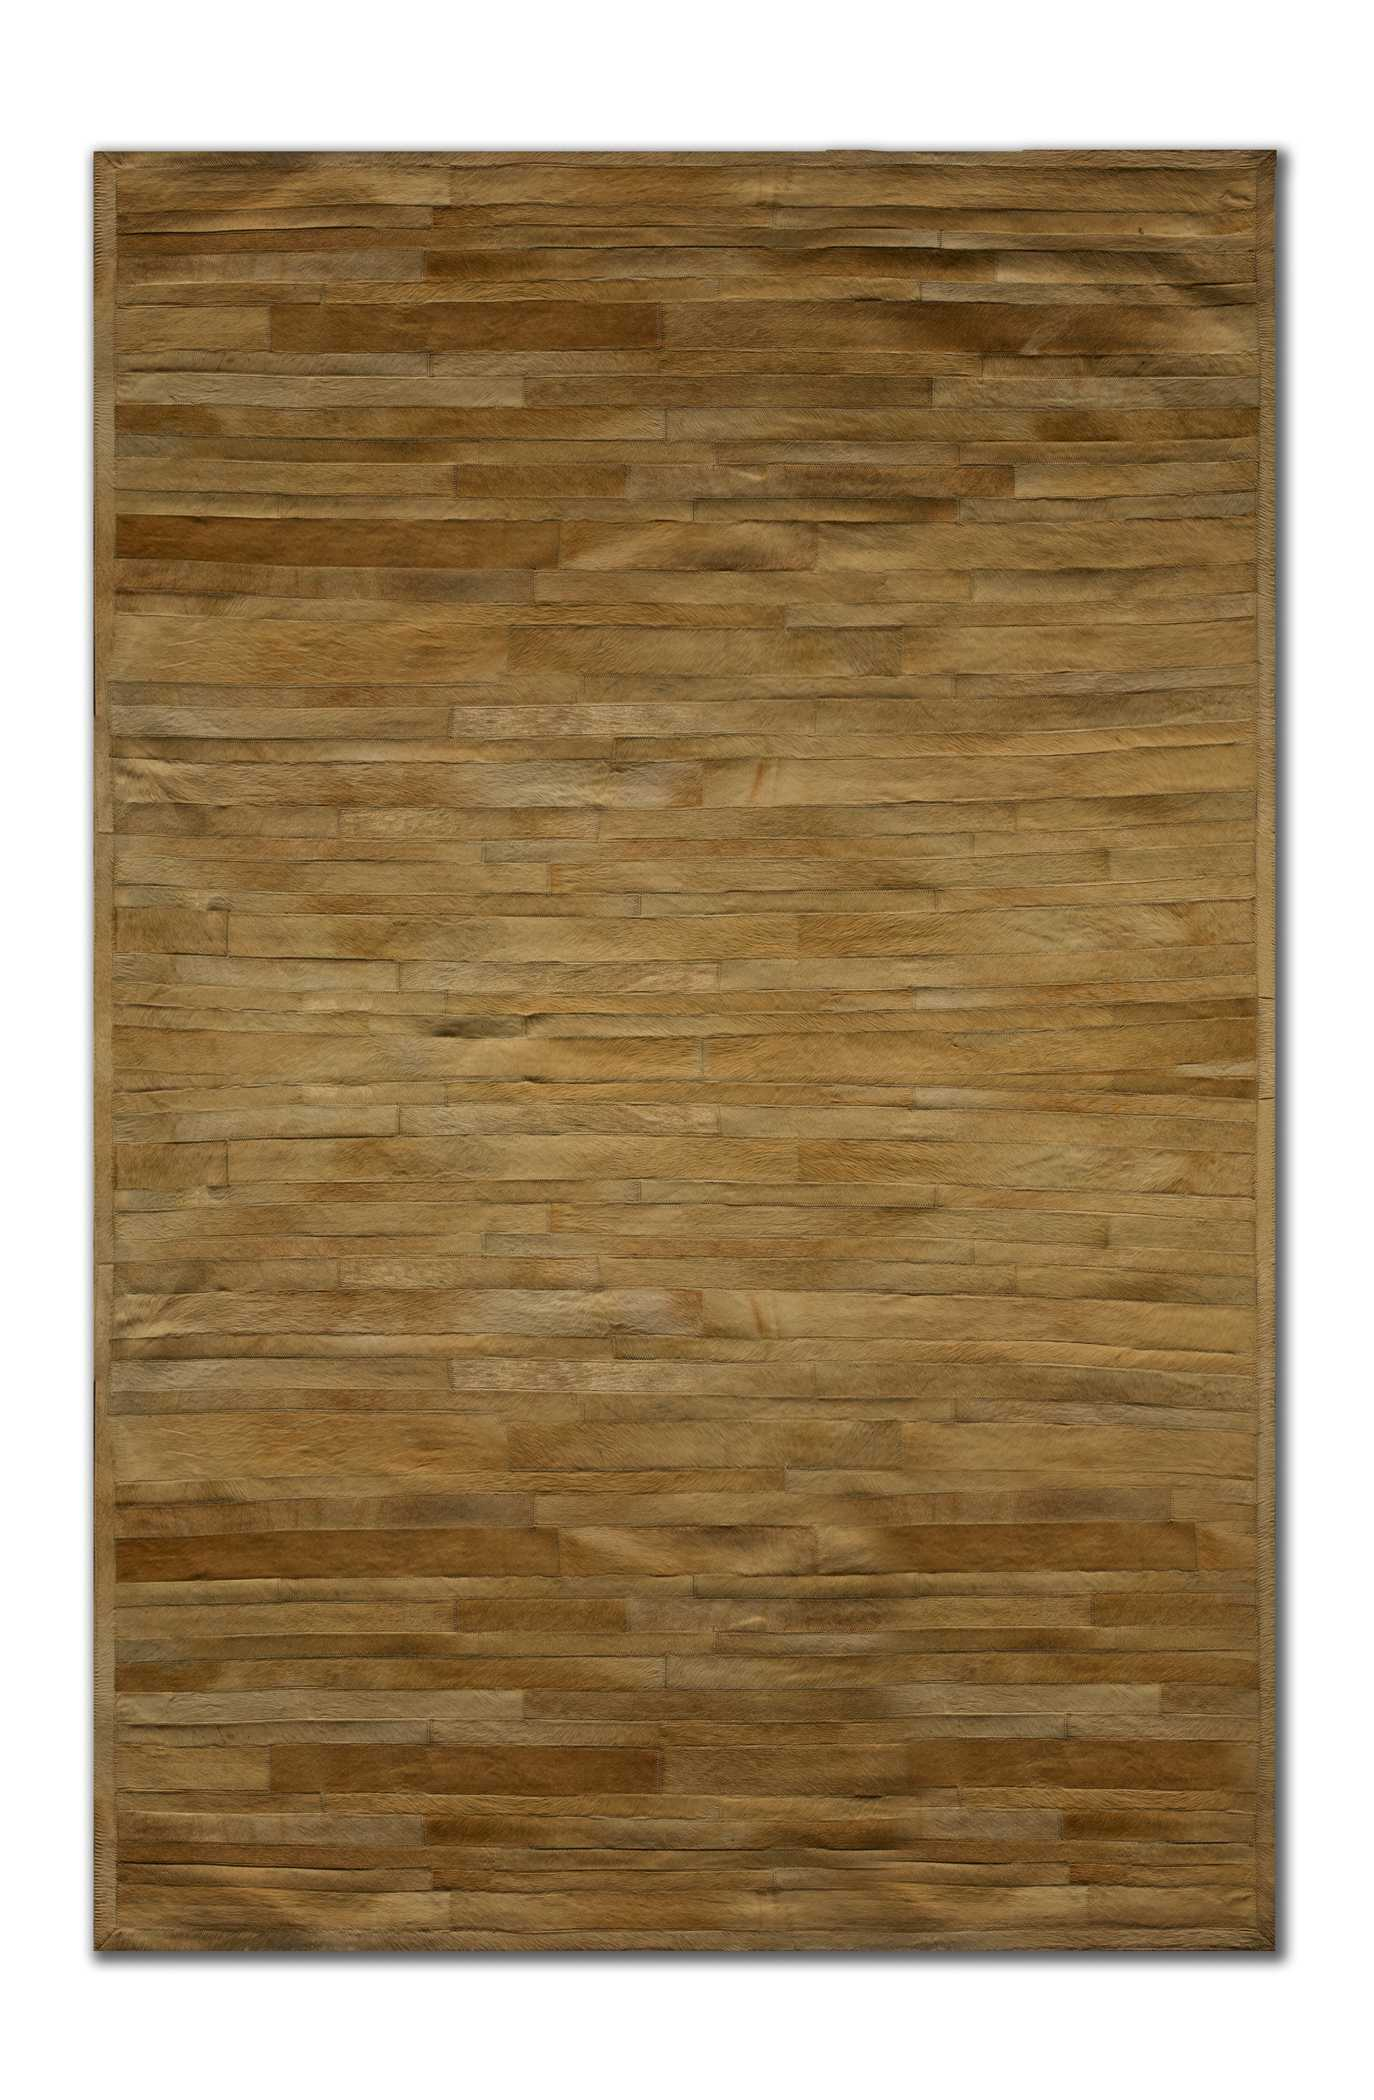 8' X 5' X 5' Tricolor 4' Sq Patches Cowhide Area Rug